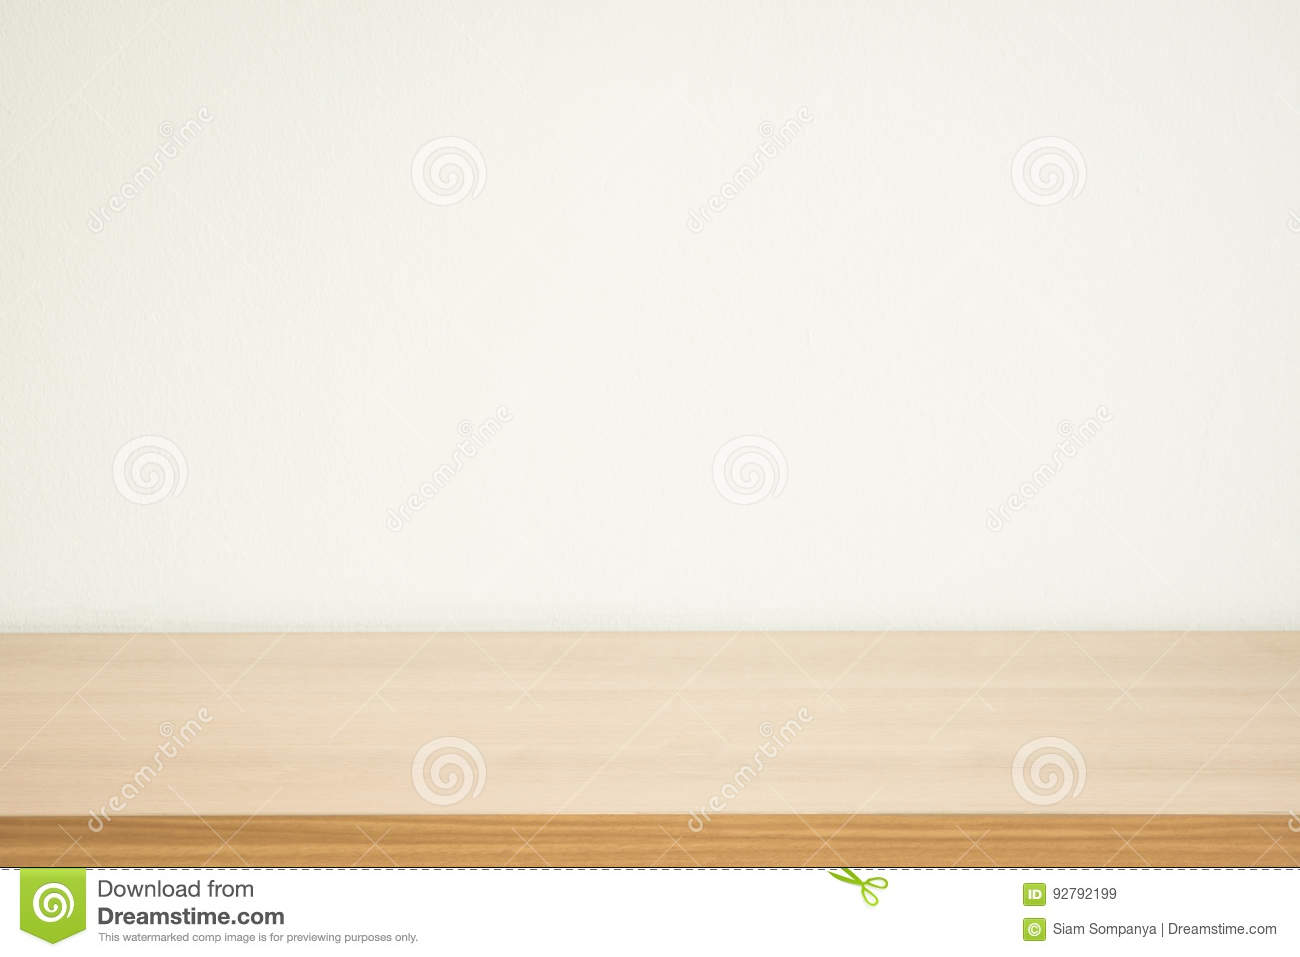 Wood table and wall background